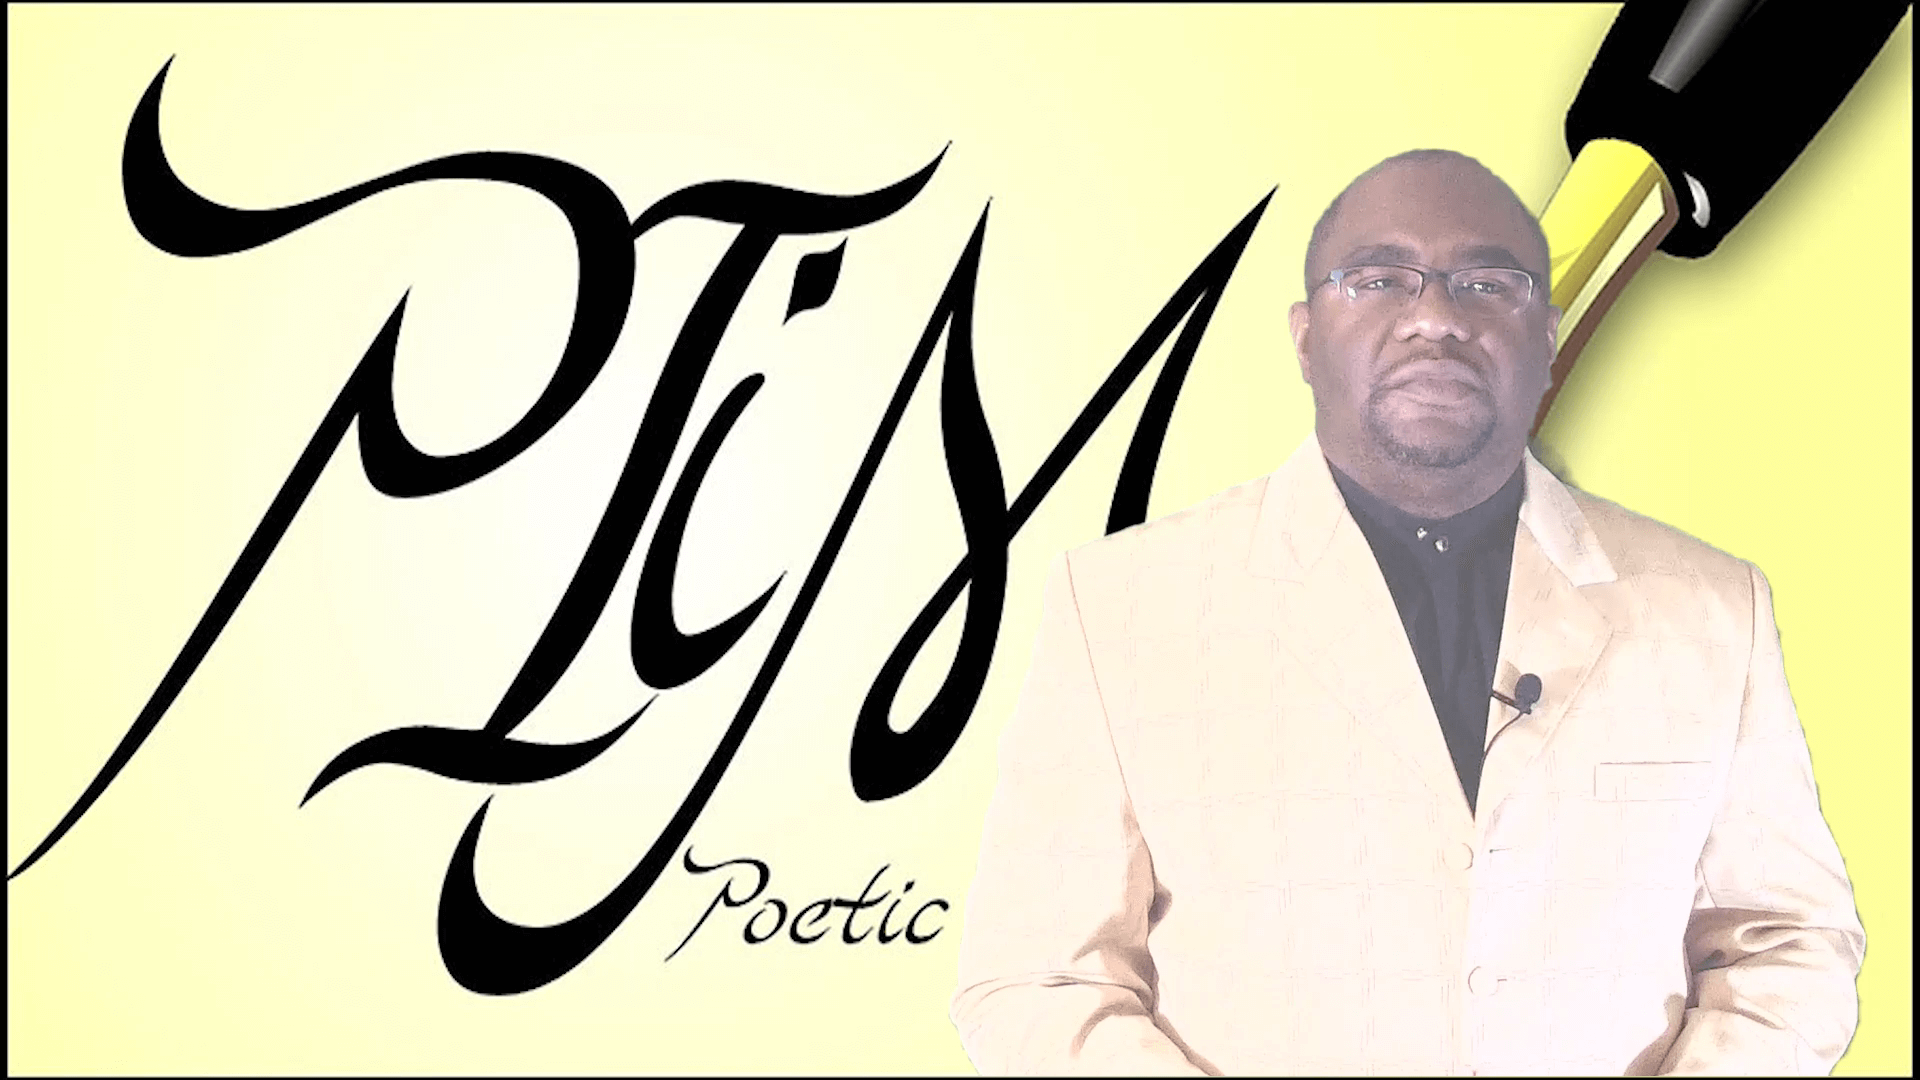 poetic imagery in motion logo with dimity